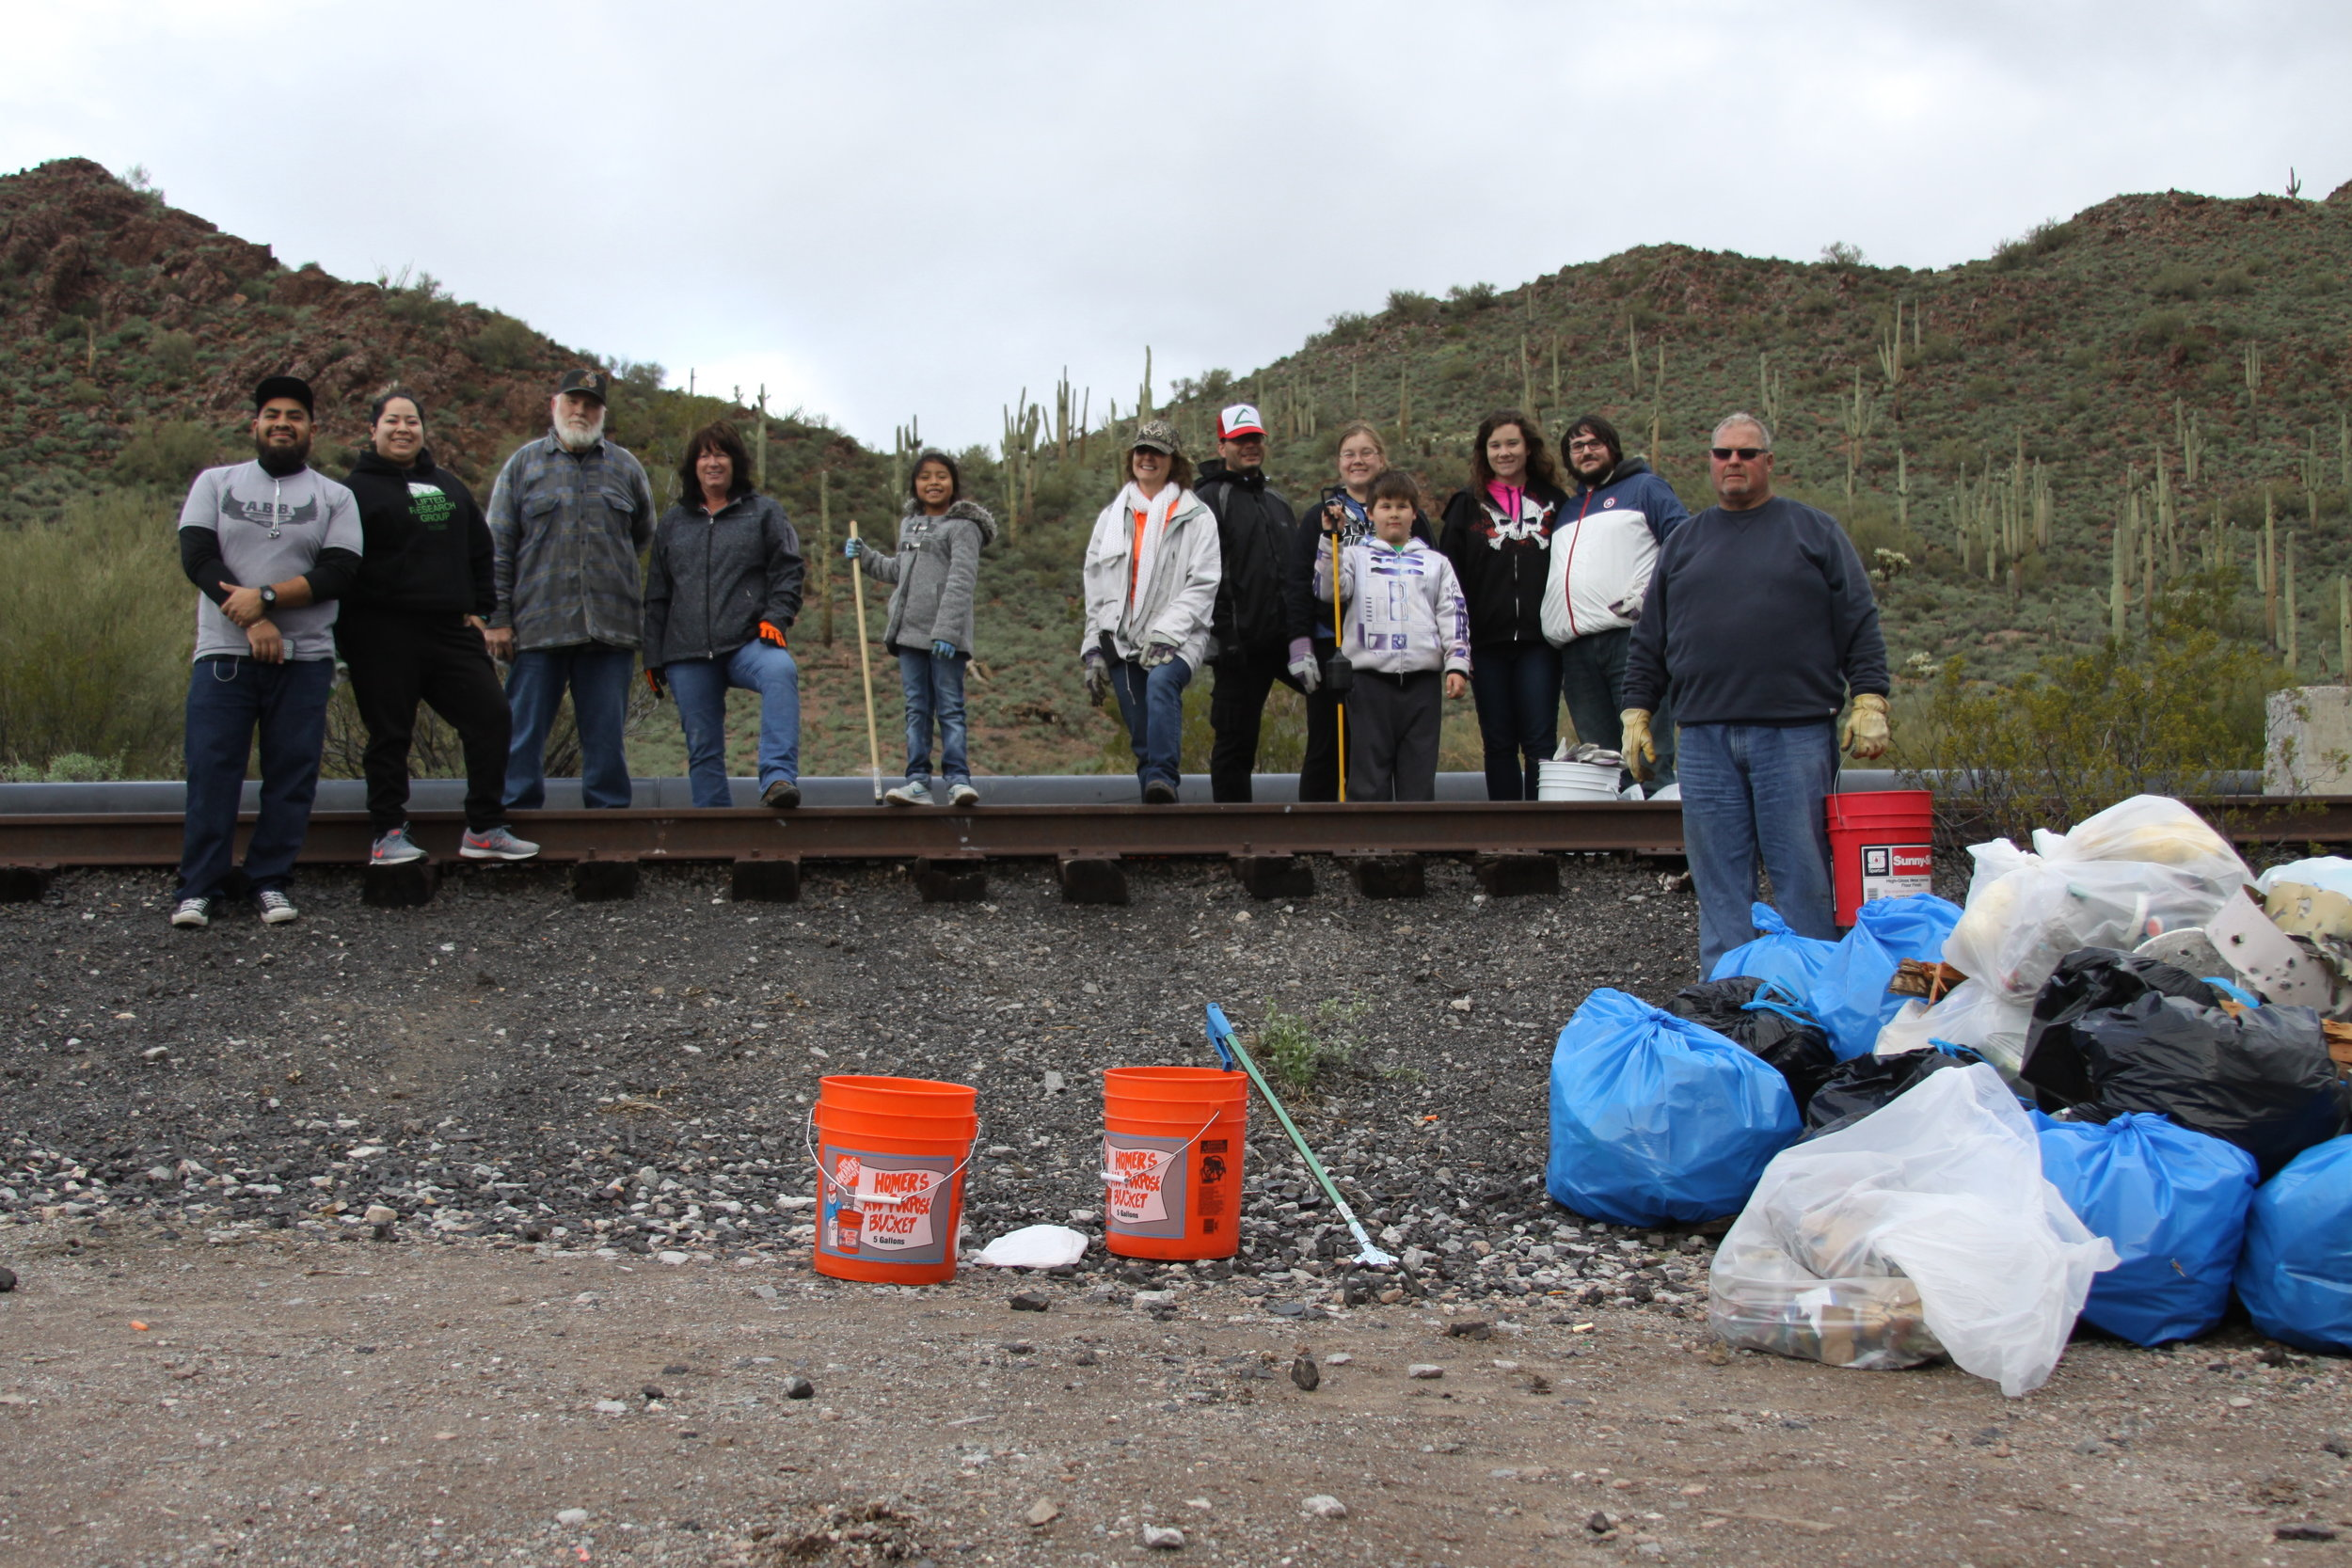 01/21/17 - Desert Trash Cleanup Project with Volunteers North of US-60 from Gold Canyon to Superior. Sites on both AZ State Trust land & the Tonto National Forest.Click HERE to view the entire restoration.